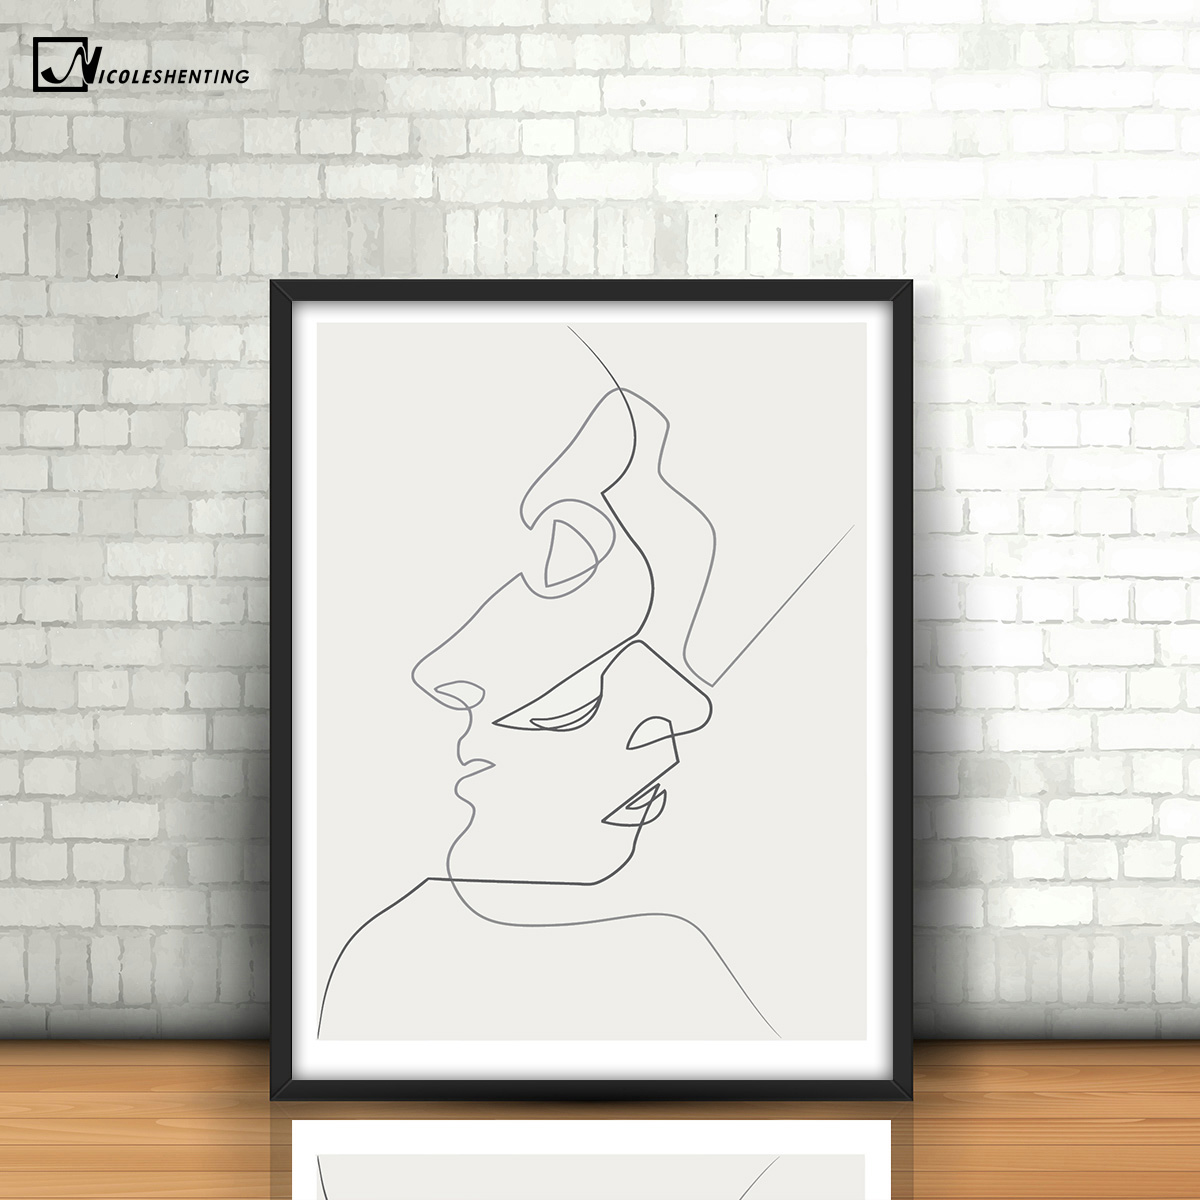 Drawing Lines Using Canvas : Kiss one line drawing face sketches minimalist art